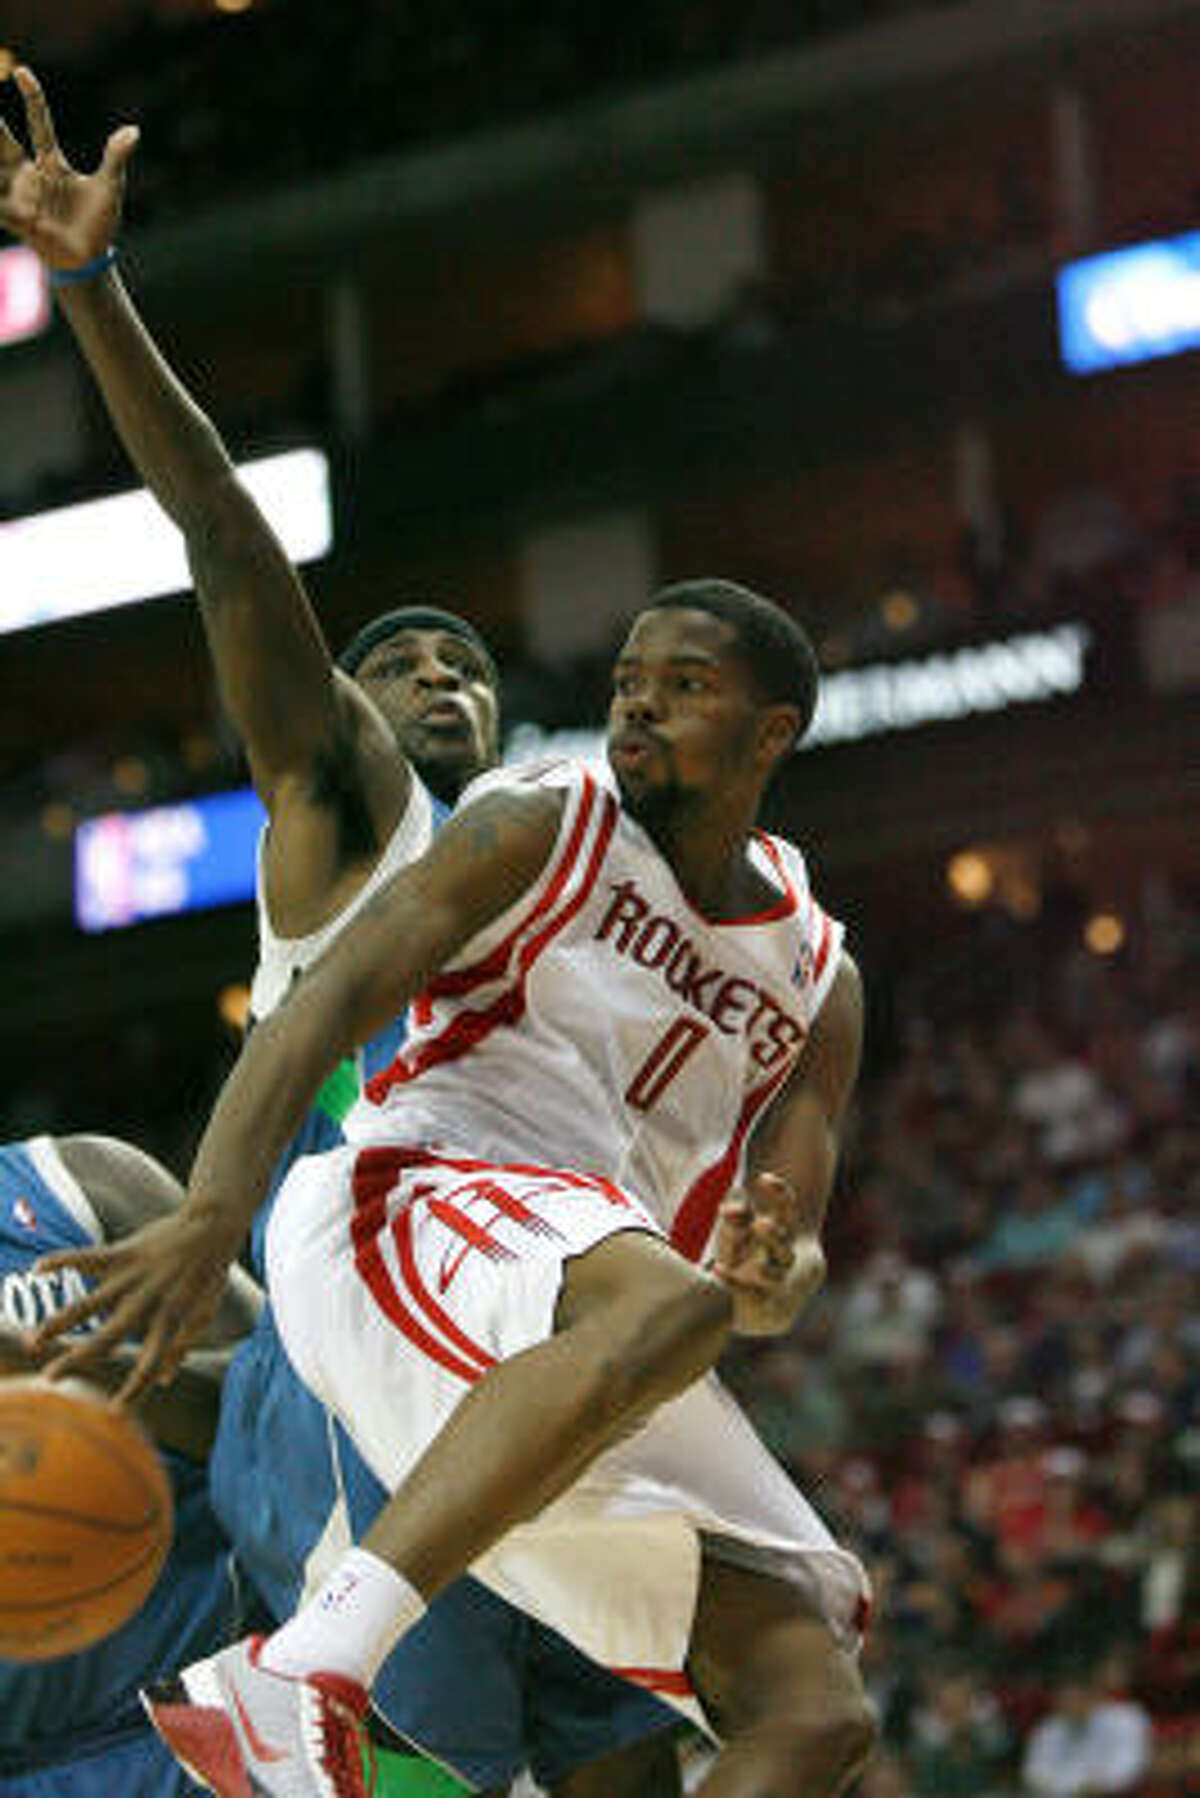 In a crowded Western Conference, Aaron Brooks and the Rockets often root for Eastern Conference teams.